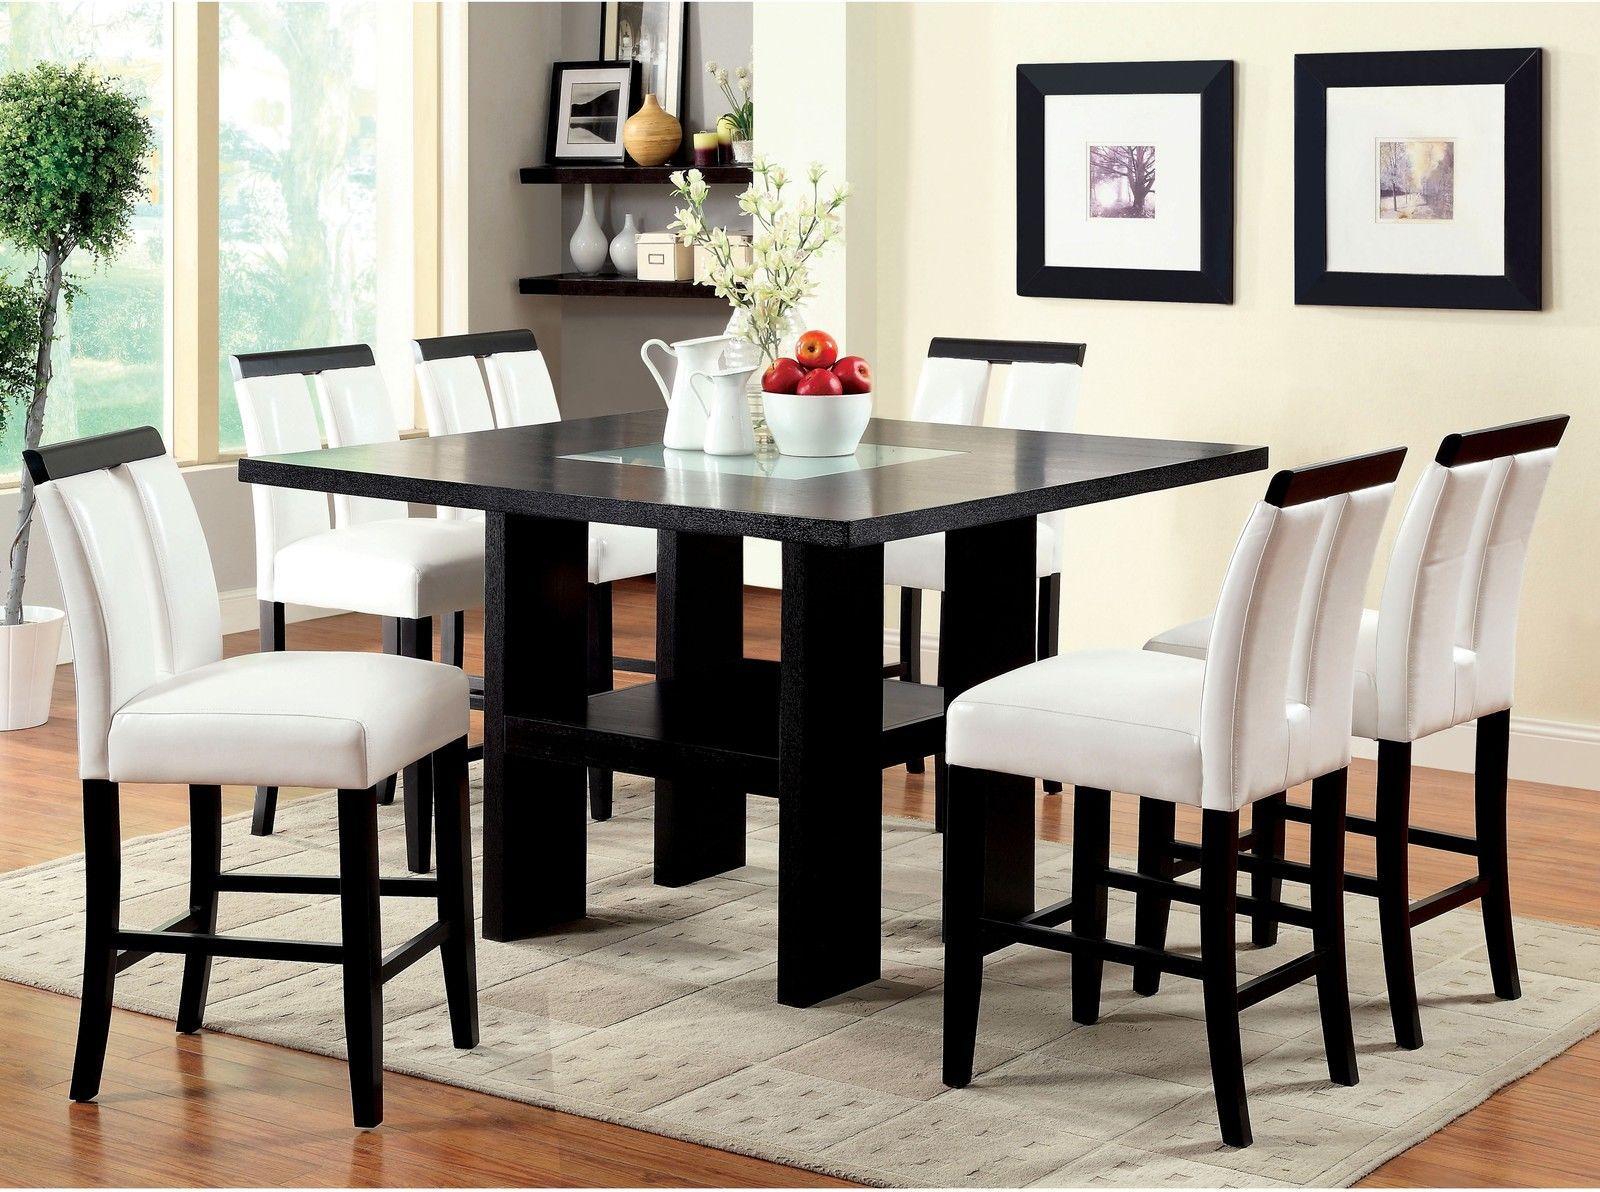 Dining room set counter height chairs black white faux for Black dining room set